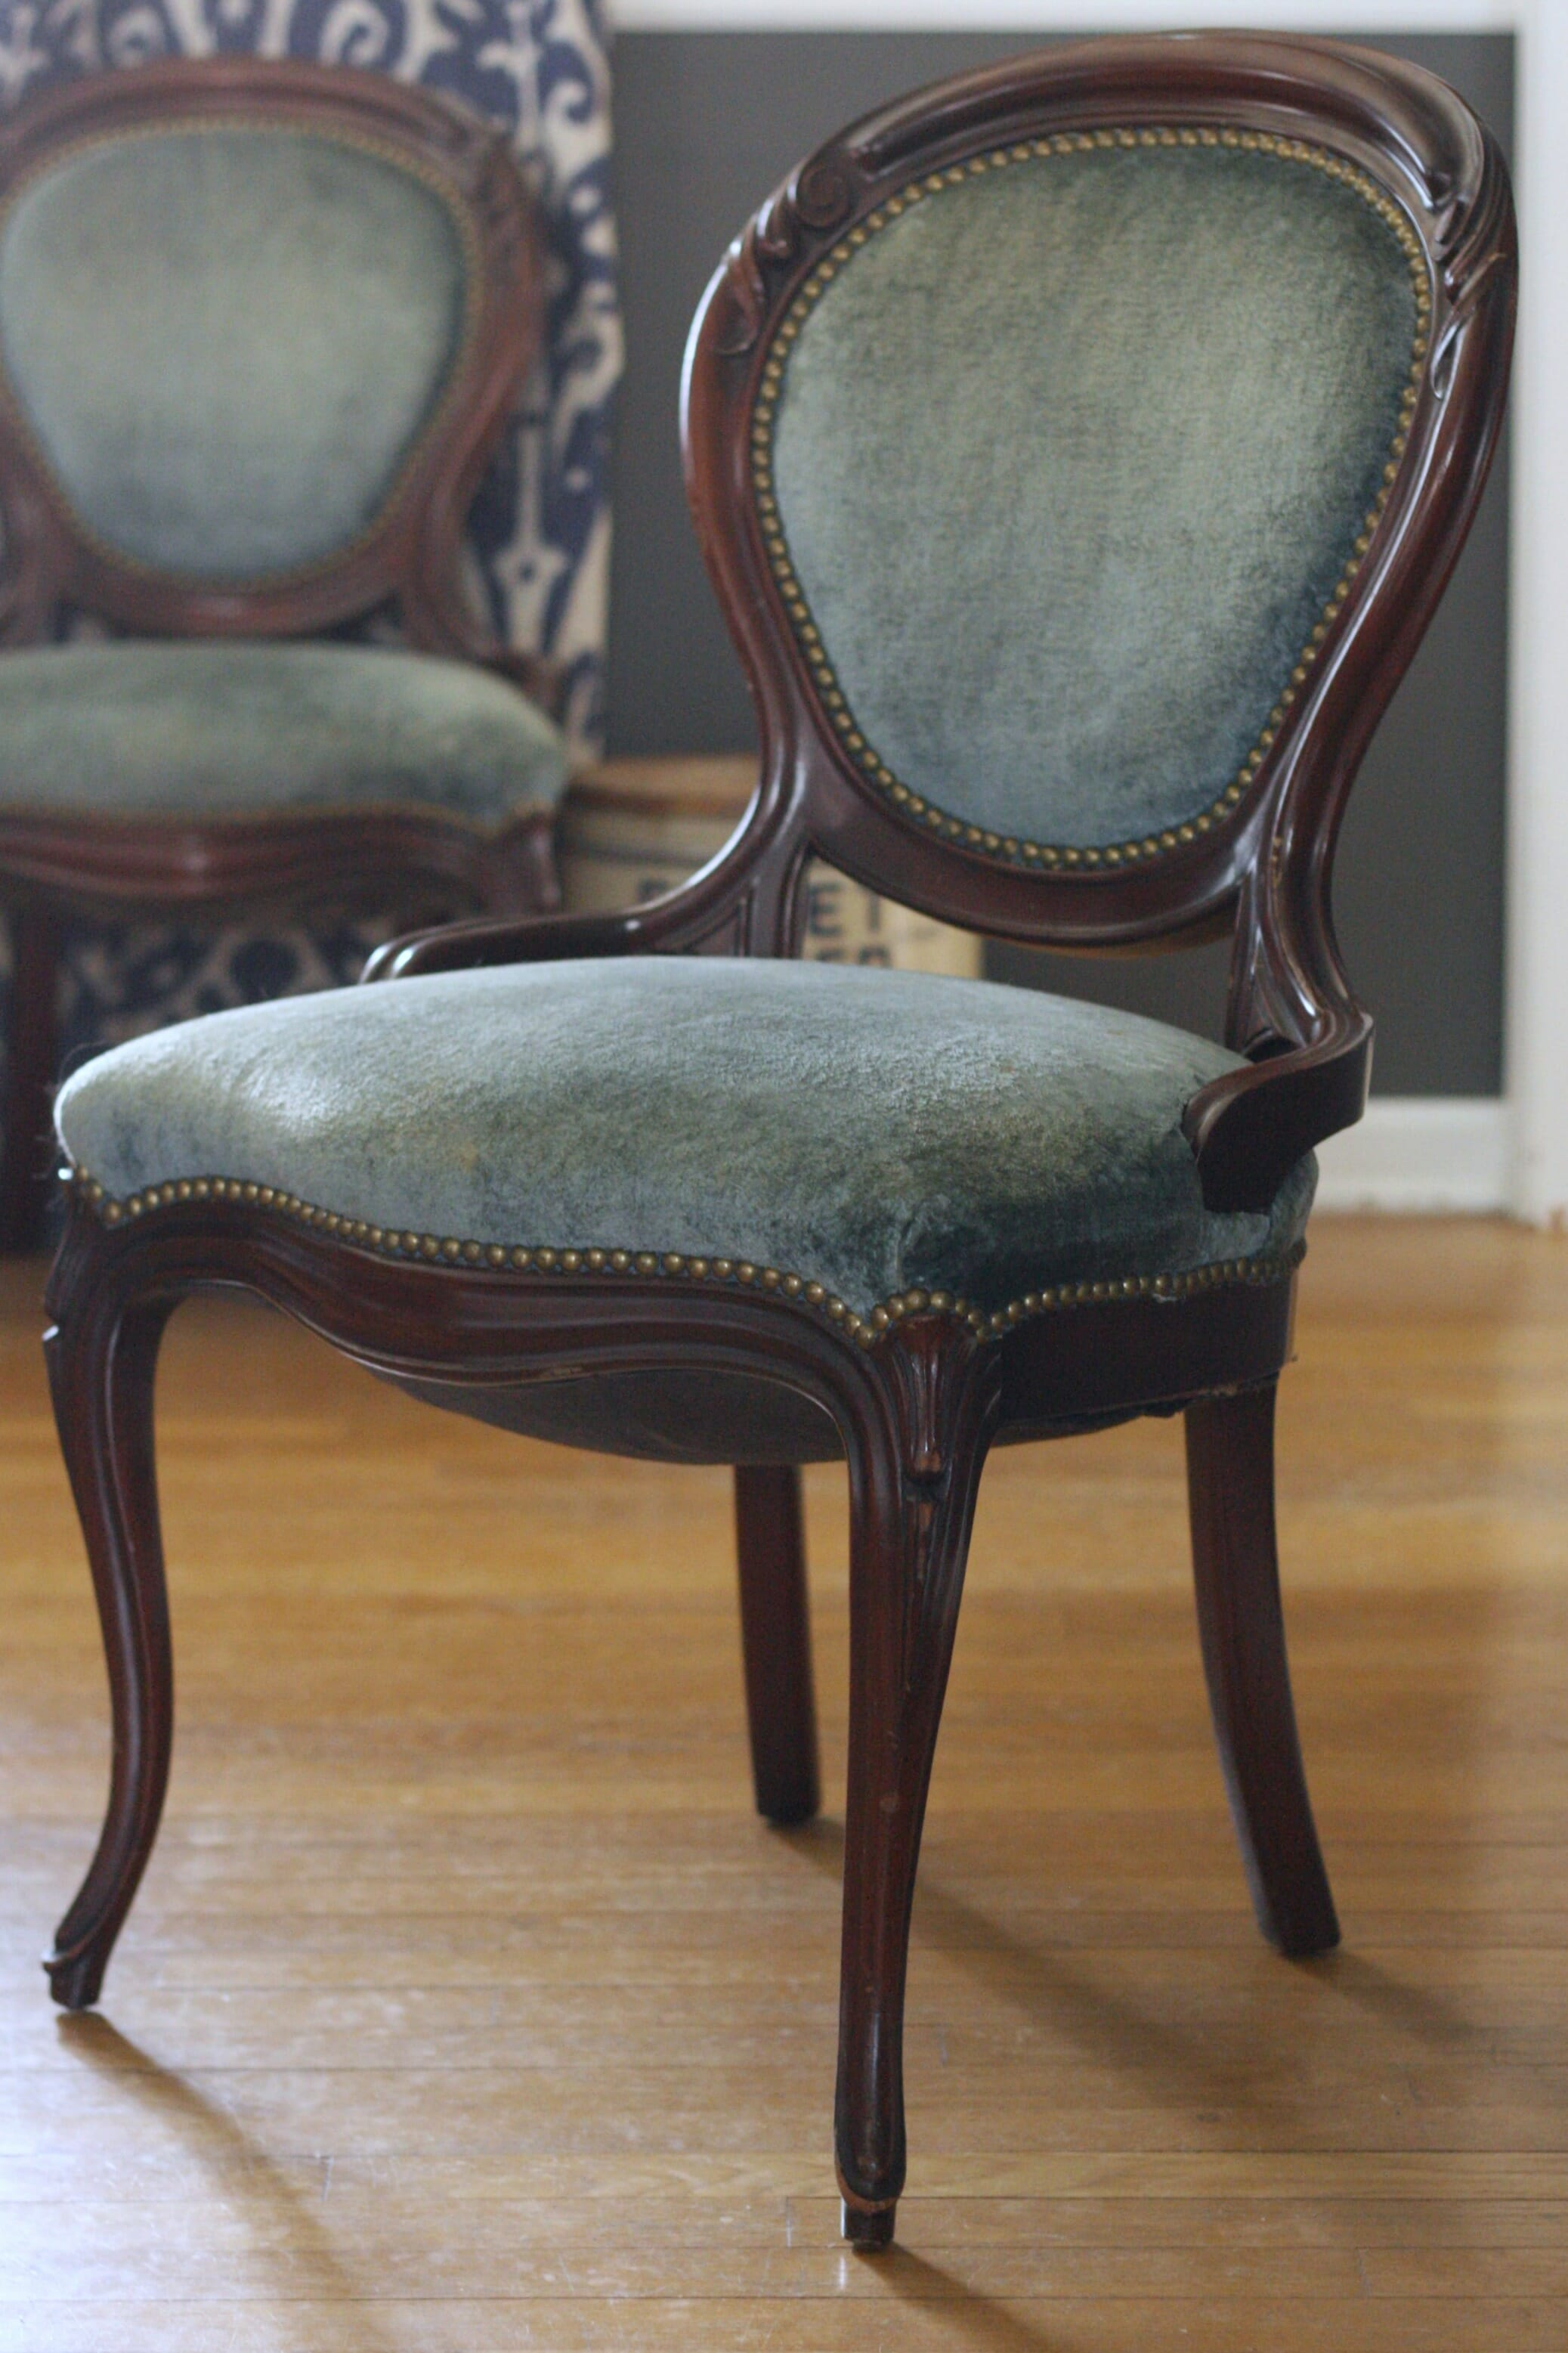 dusty blue velvet chairs in dining room - Blue Velvet Chair